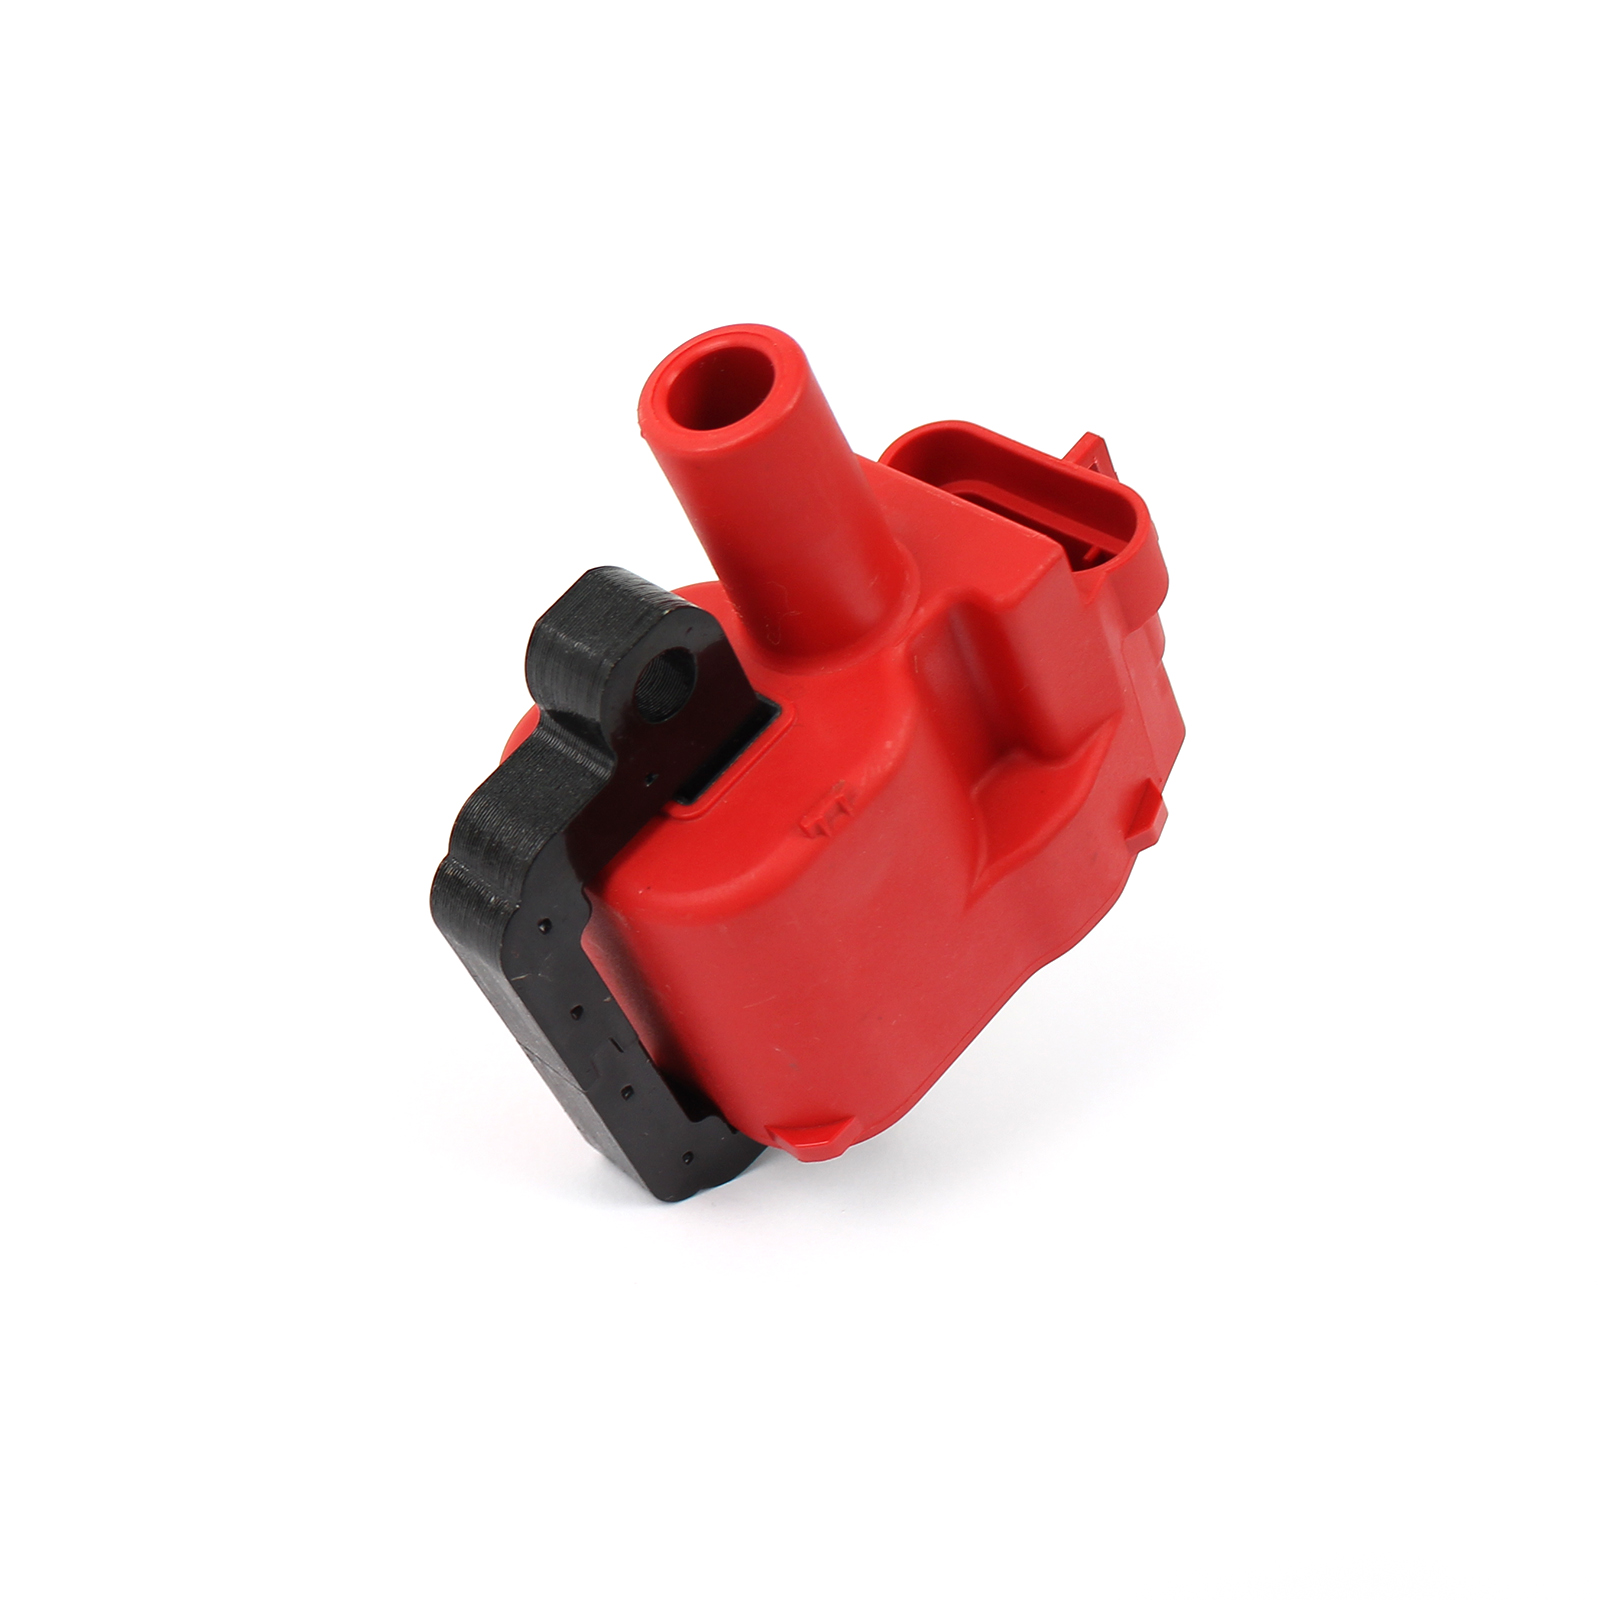 Chevy Gm LS1 LS6 12V High Output External Female E-Poxy Ignition Coil Red